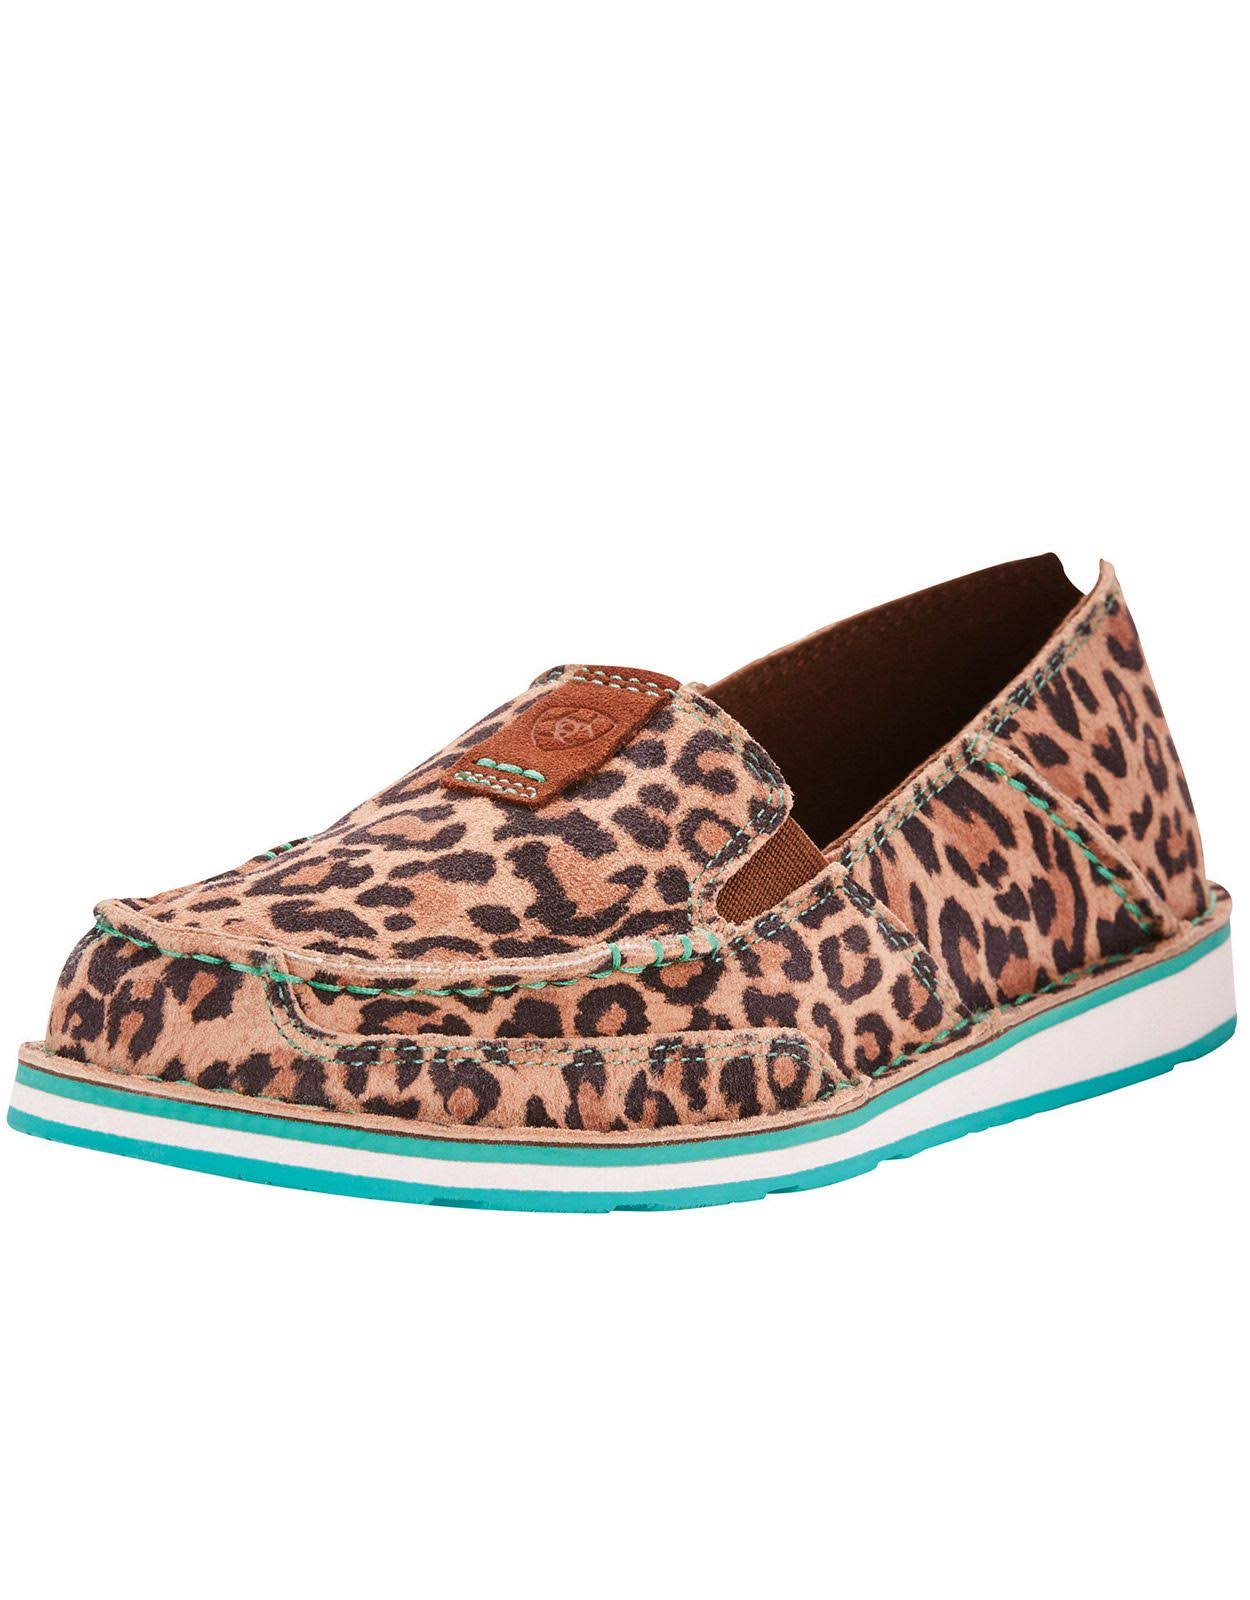 Ariat Cruiser (Cheetah) Women's Slip on Shoes